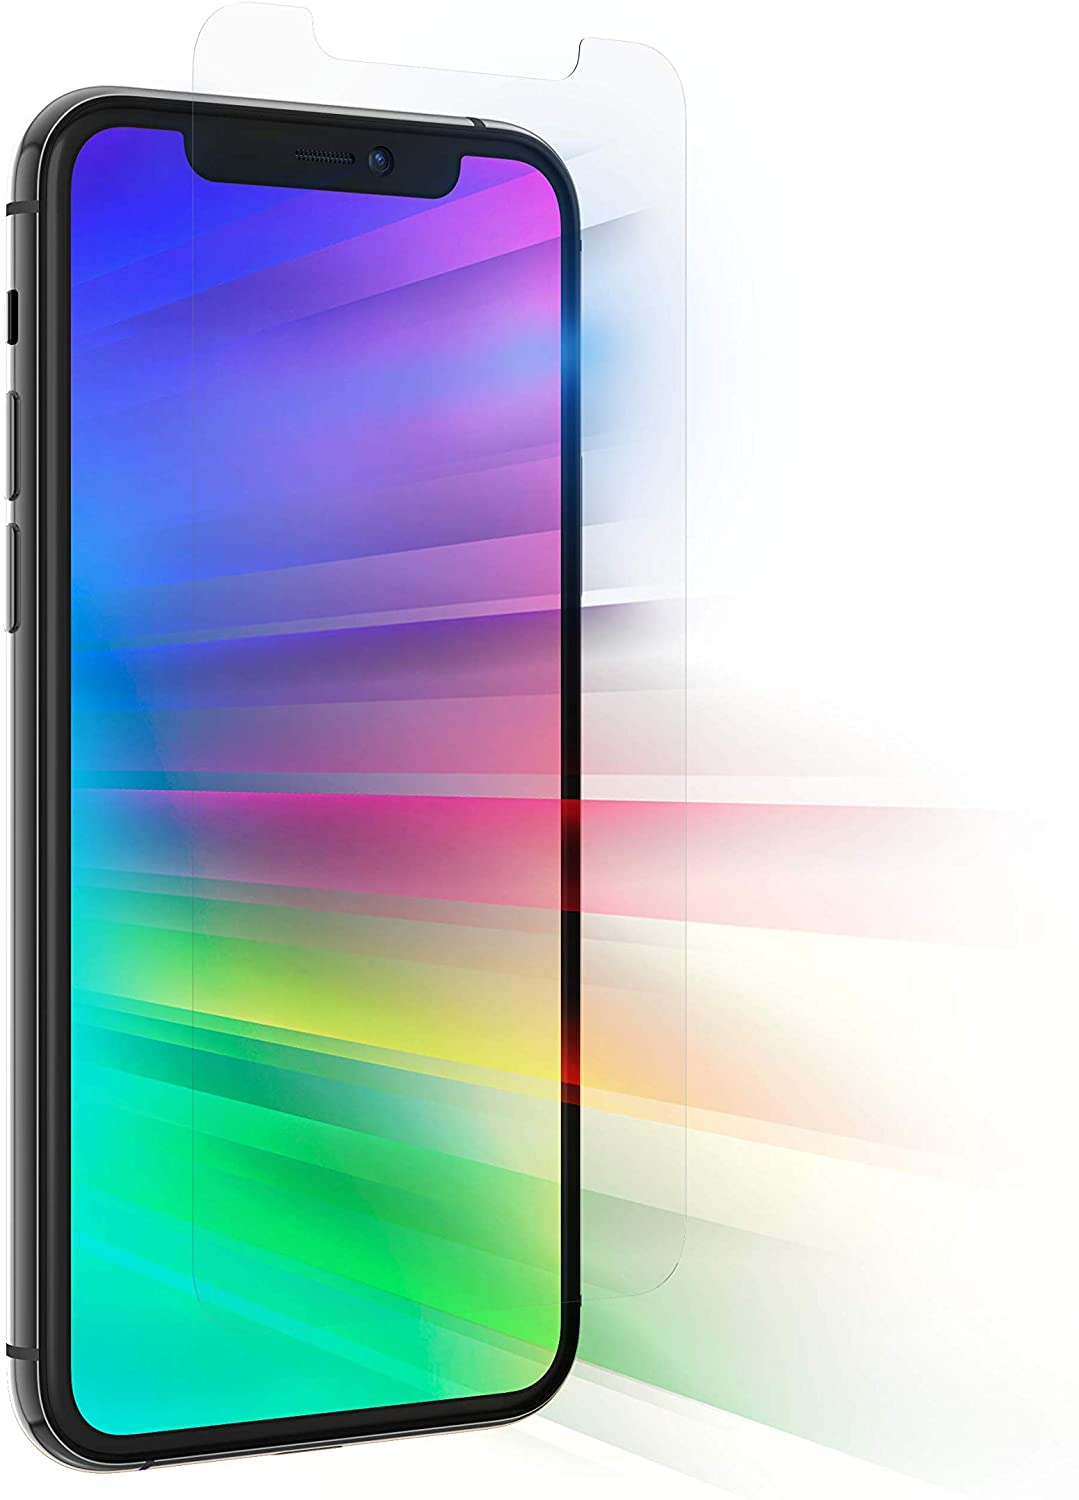 Protective Film 100/% fits Display Protection Film Savvies Crystalclear Screen Protector for AVM FRITZ!Fon MT-D